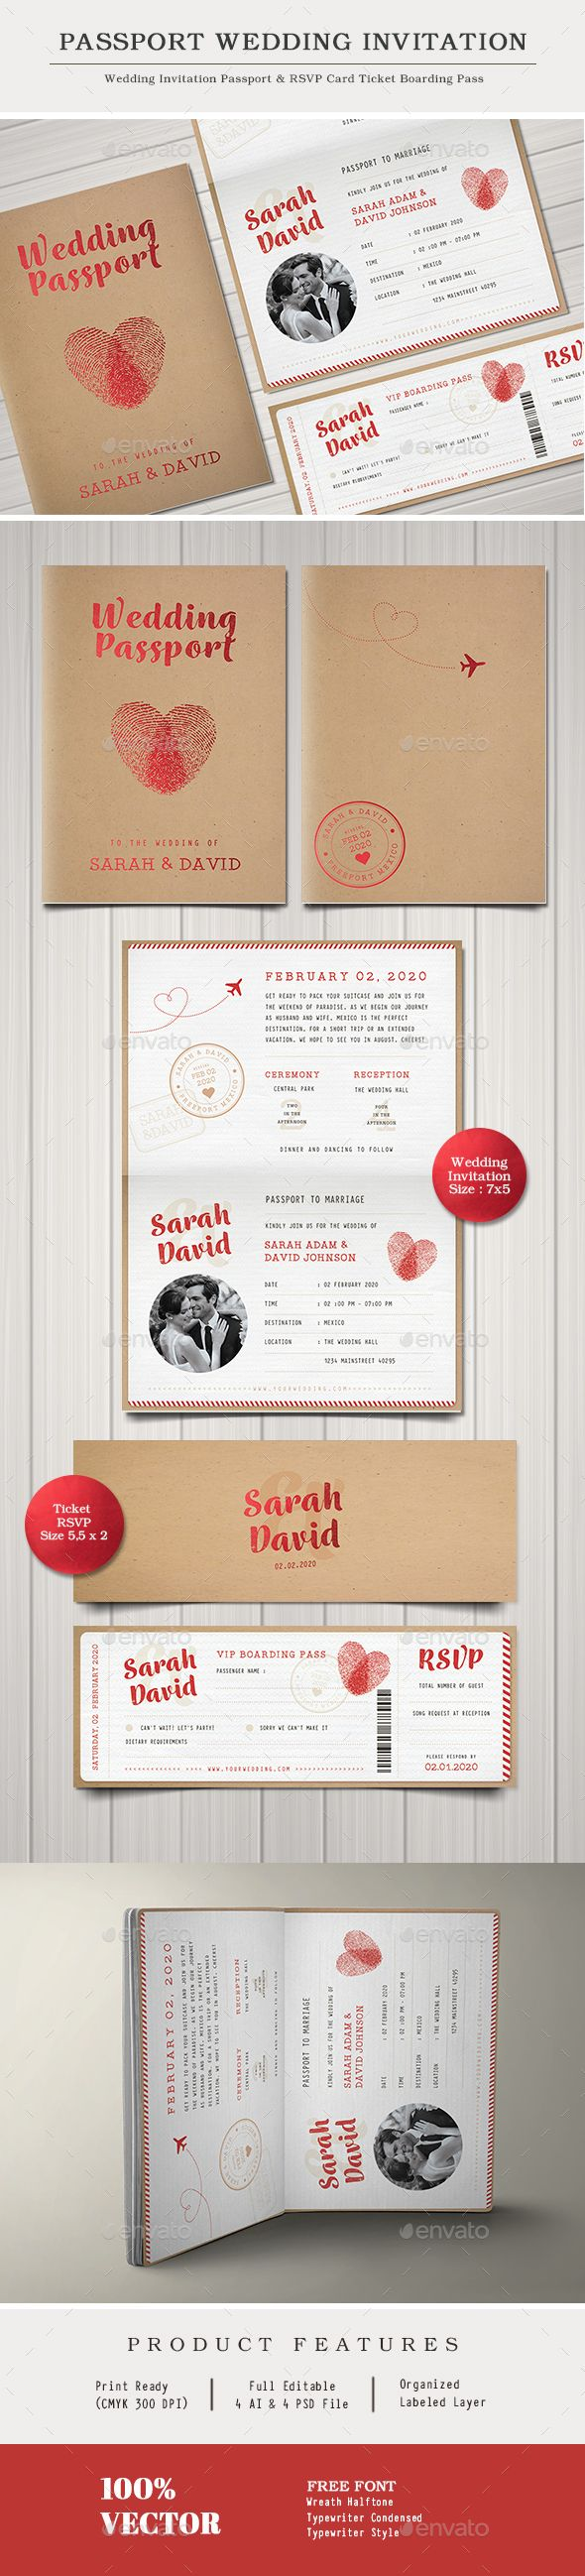 free wedding invitation psd%0A Vintage Passport Wedding Invitation